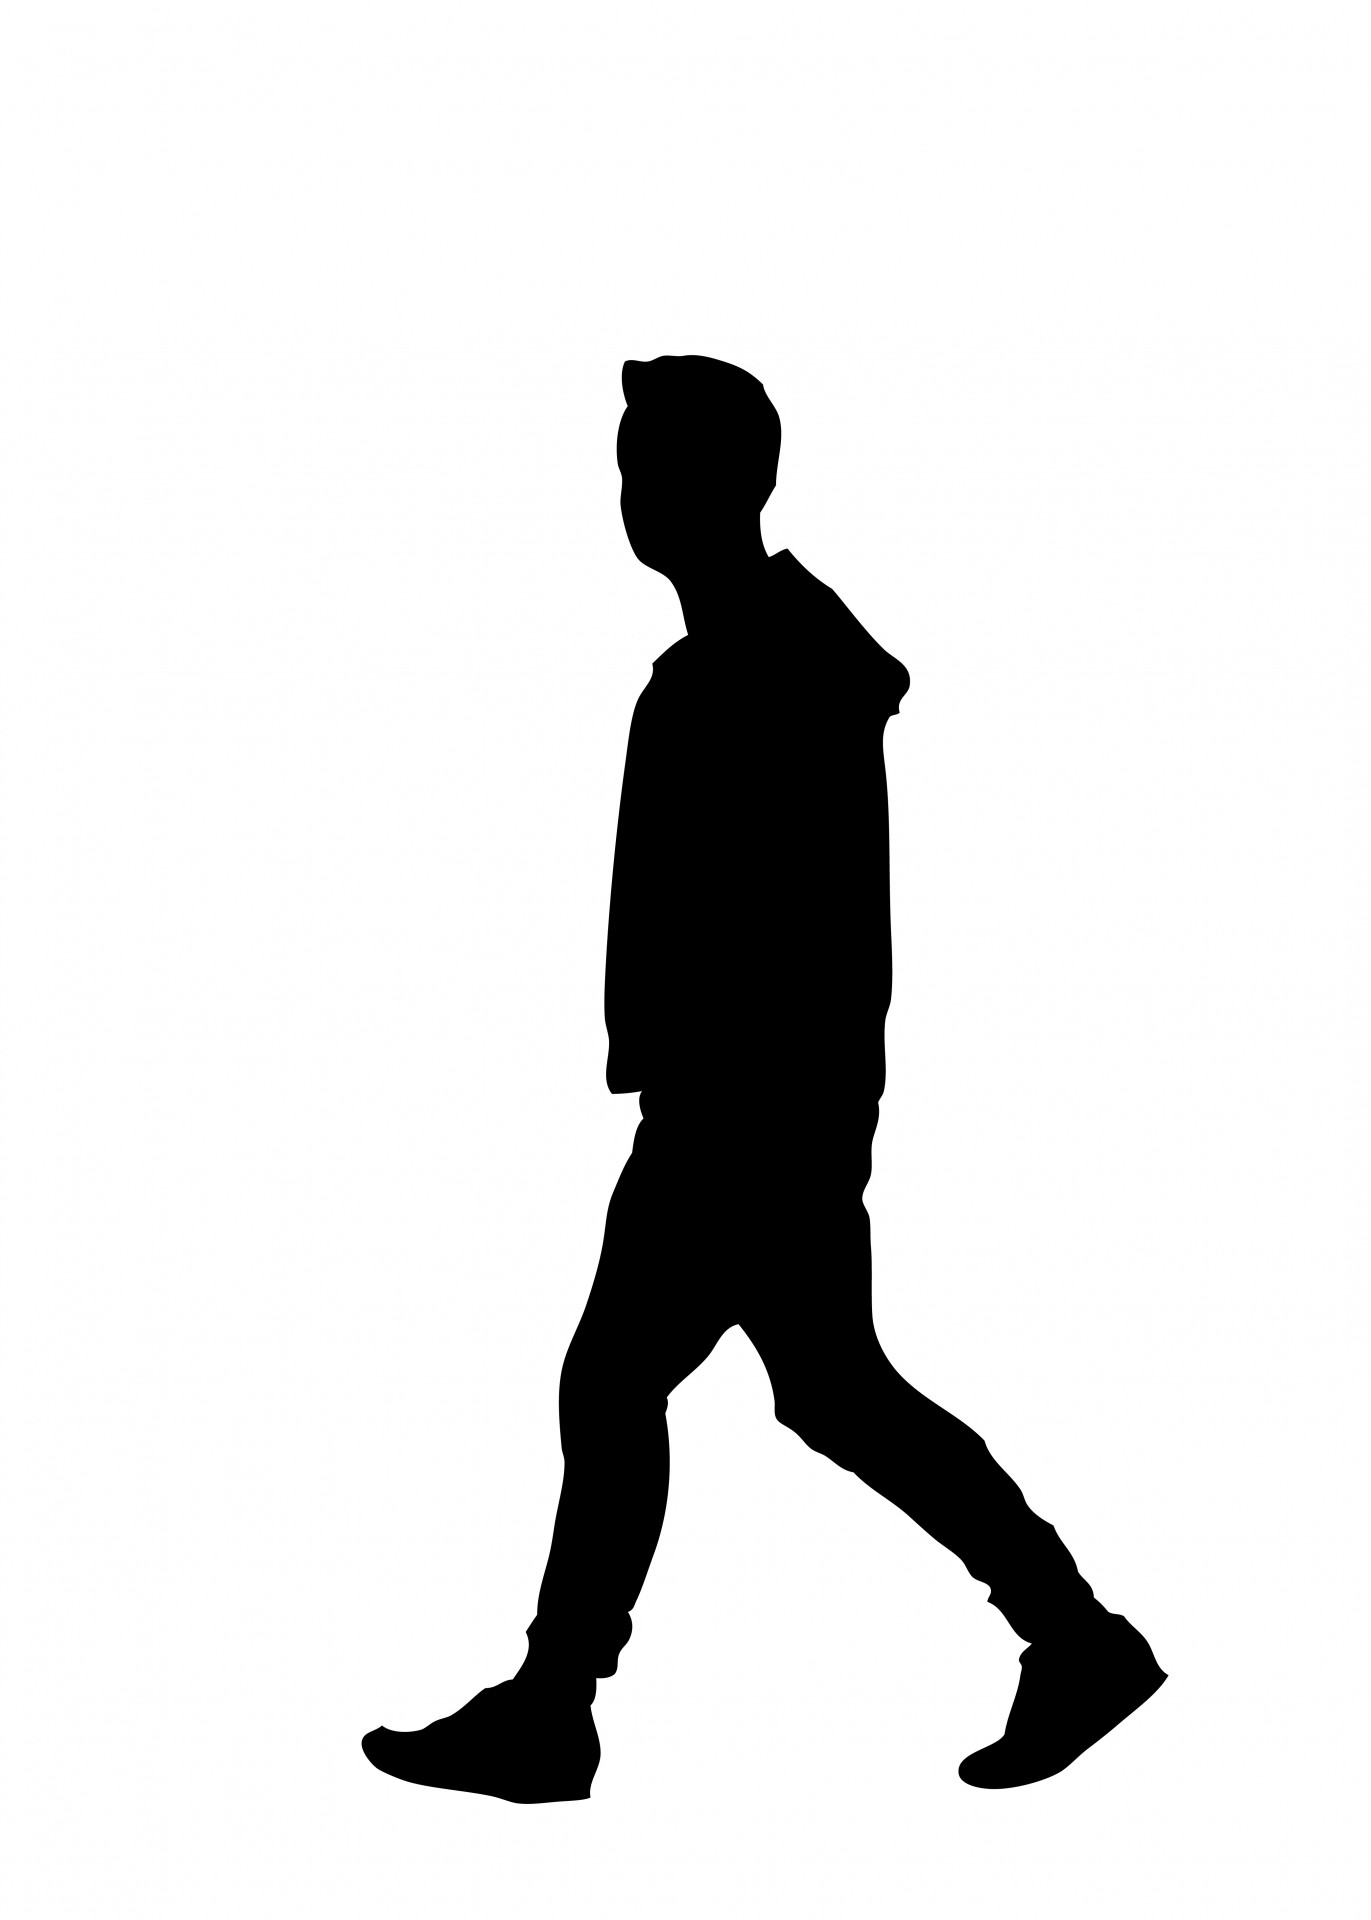 Man walking free stock. Walk clipart silhouette clipart library